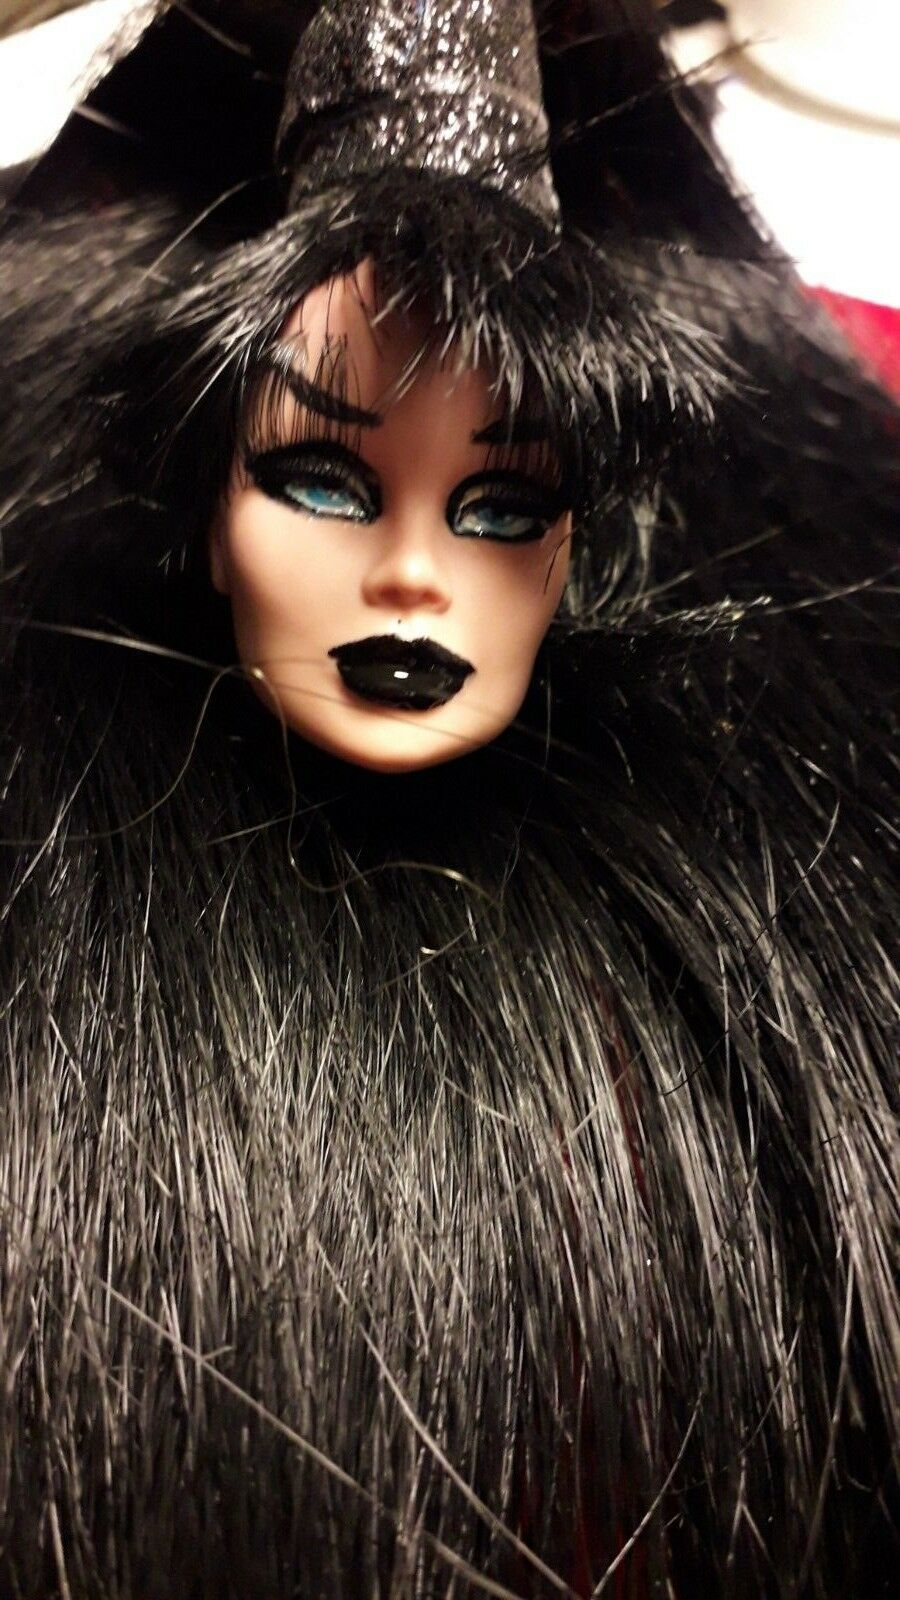 FASHION ROYALTY VANESSA  ONLY HEAD      barbie muse FR  ART DOLL OOAK